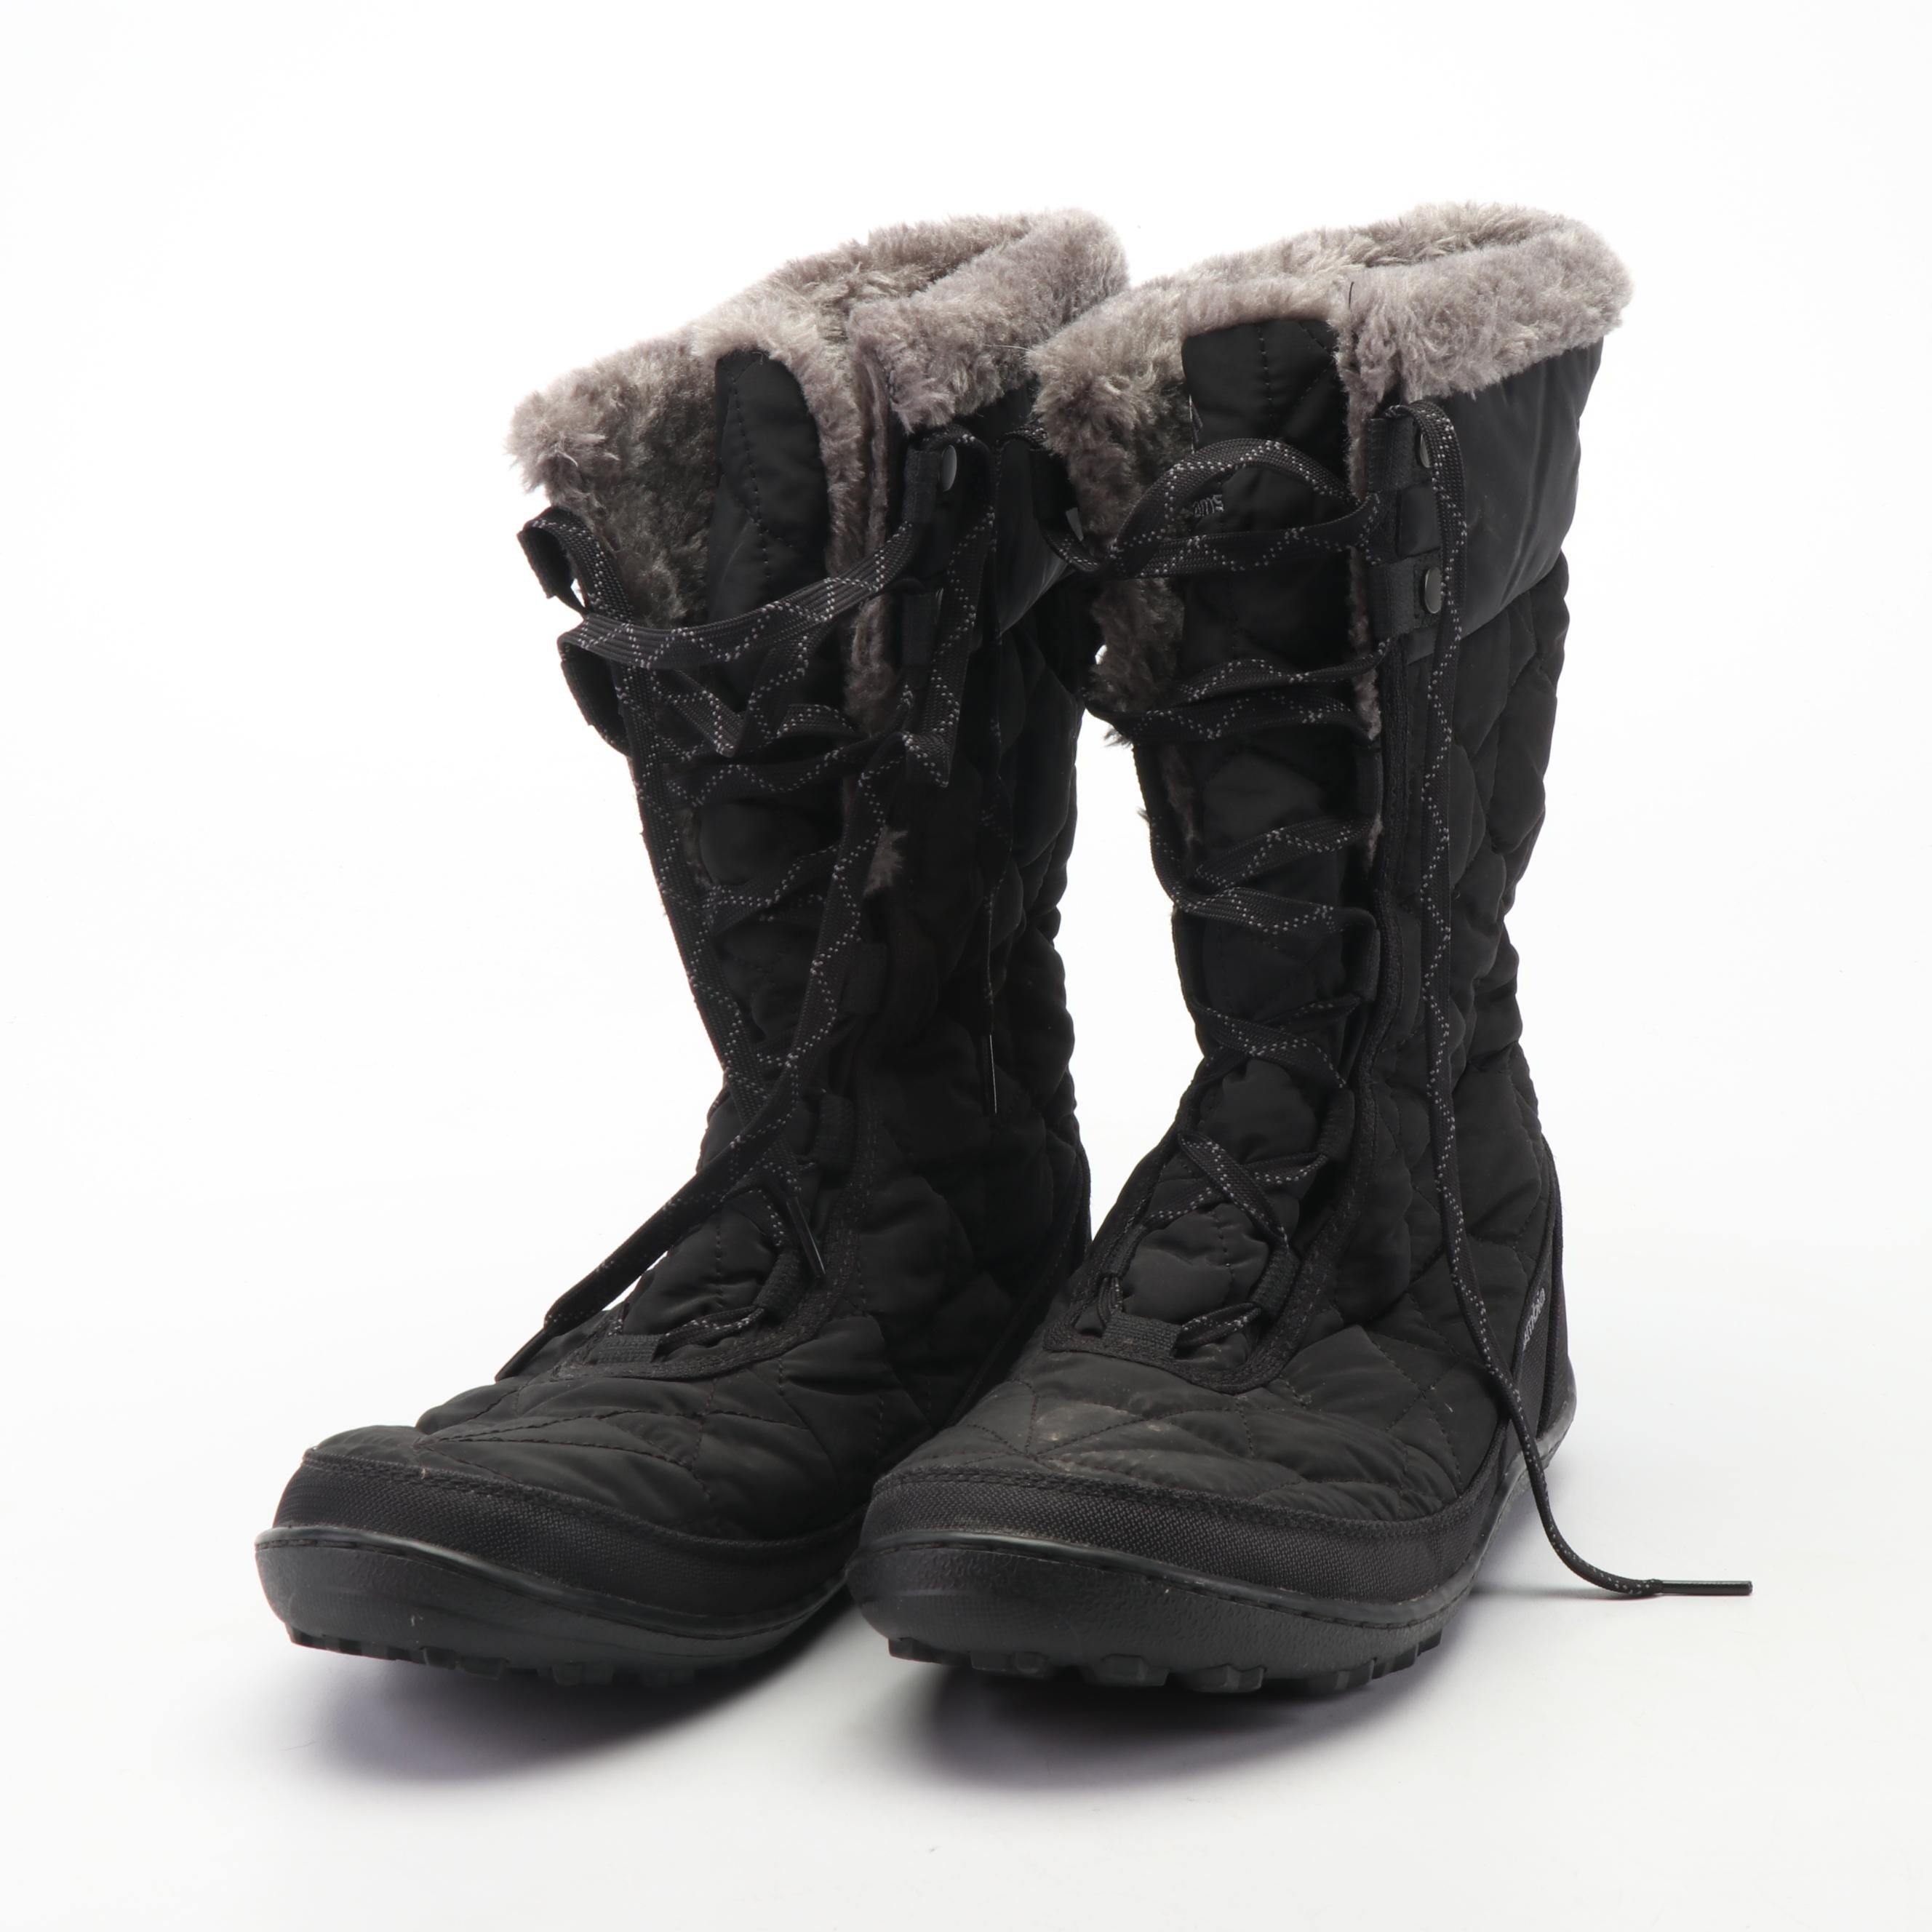 Women's Columbia Omni-Grip Quilted Black Winter Boots with Faux Fur